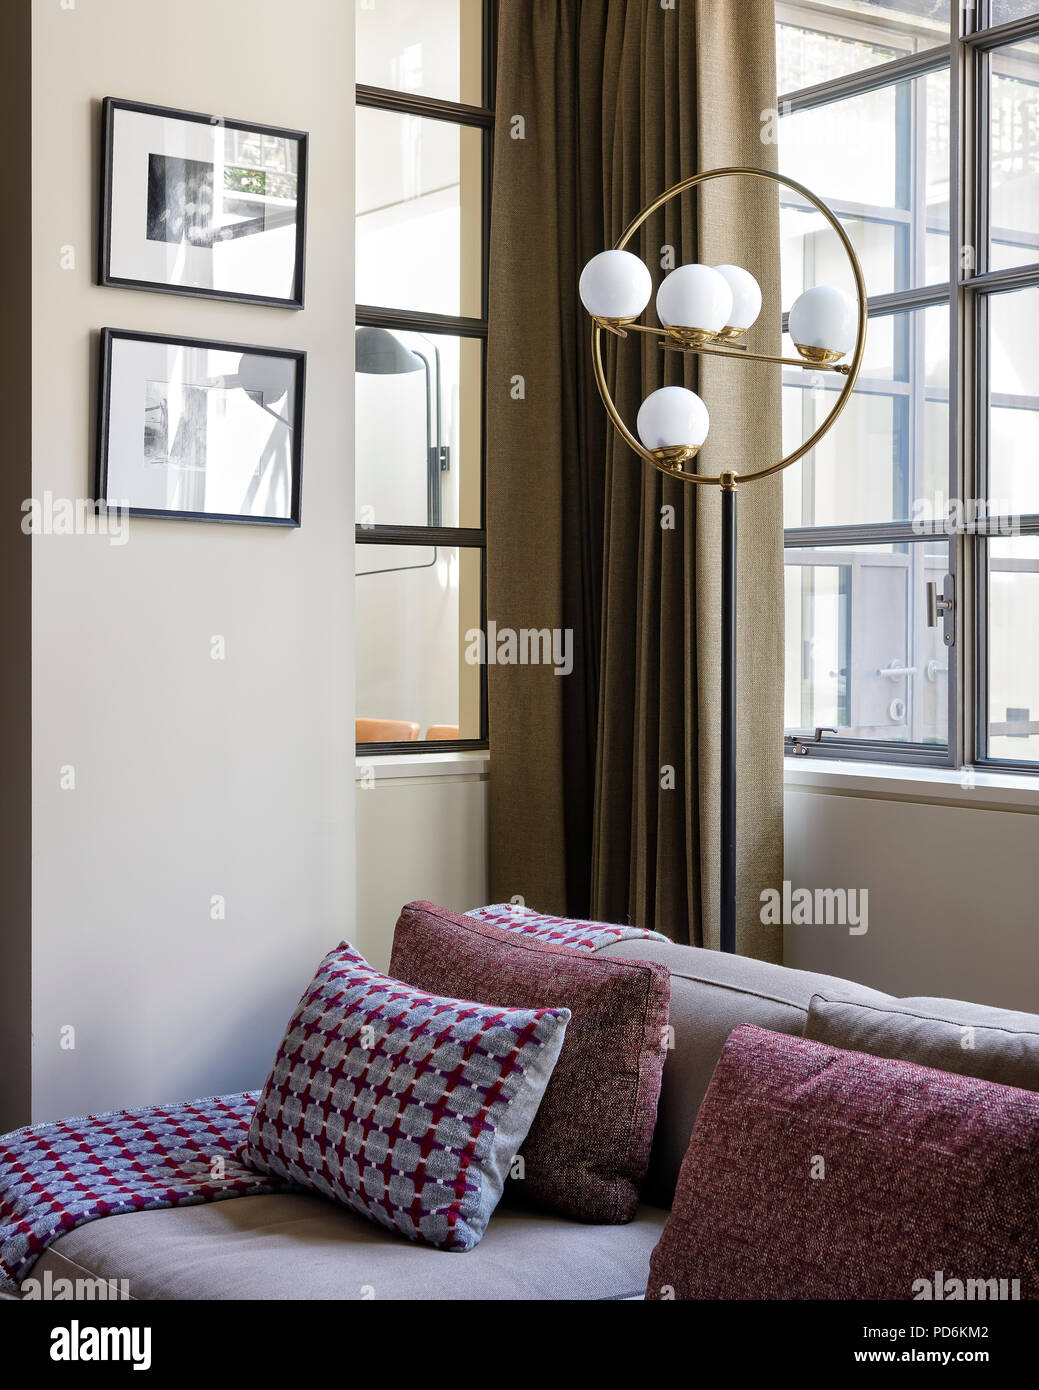 Vintage light fitting with framed artwork and sofa at window - Stock Image